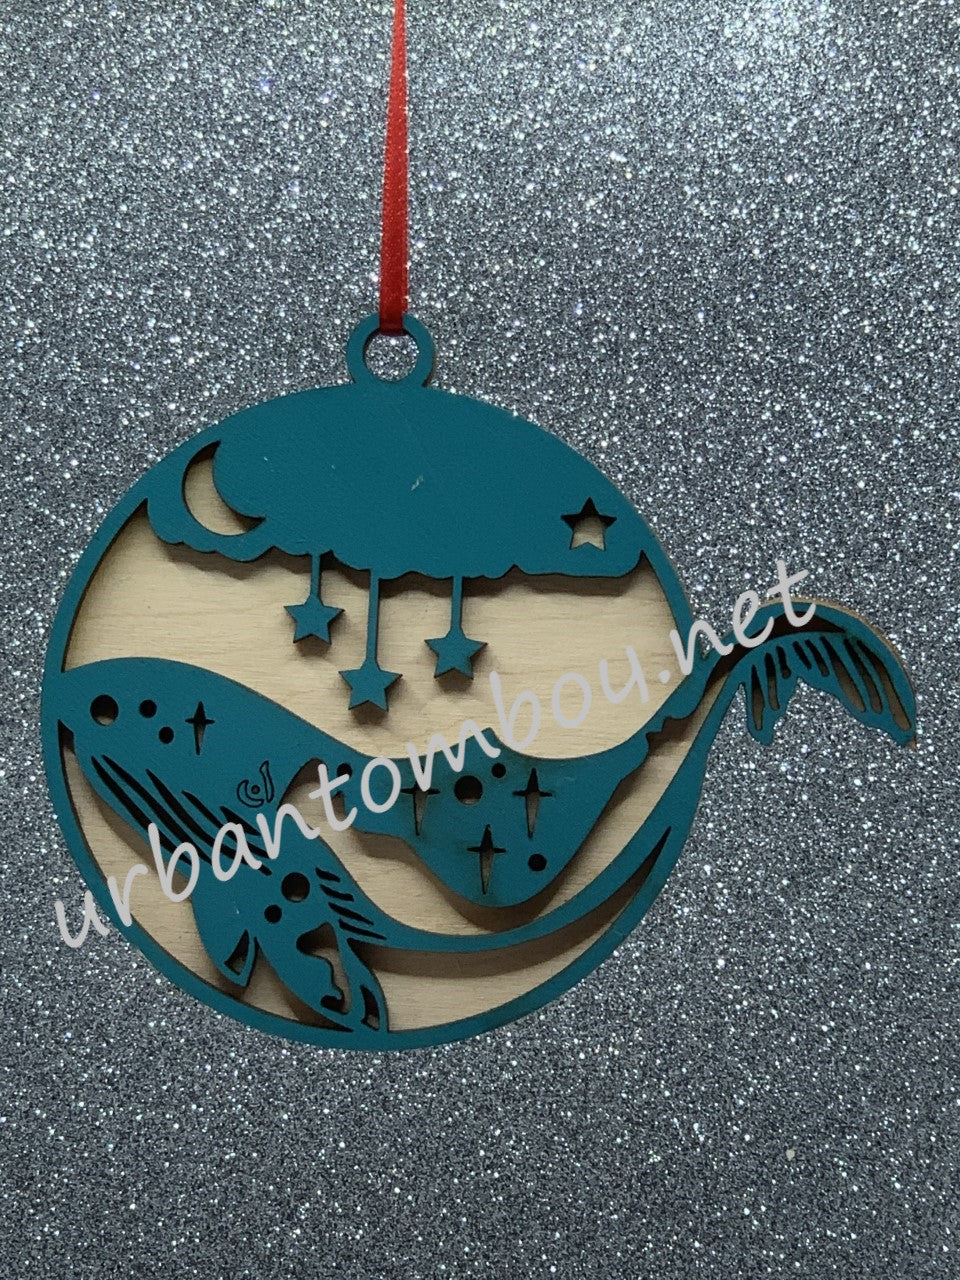 Humpback ornament